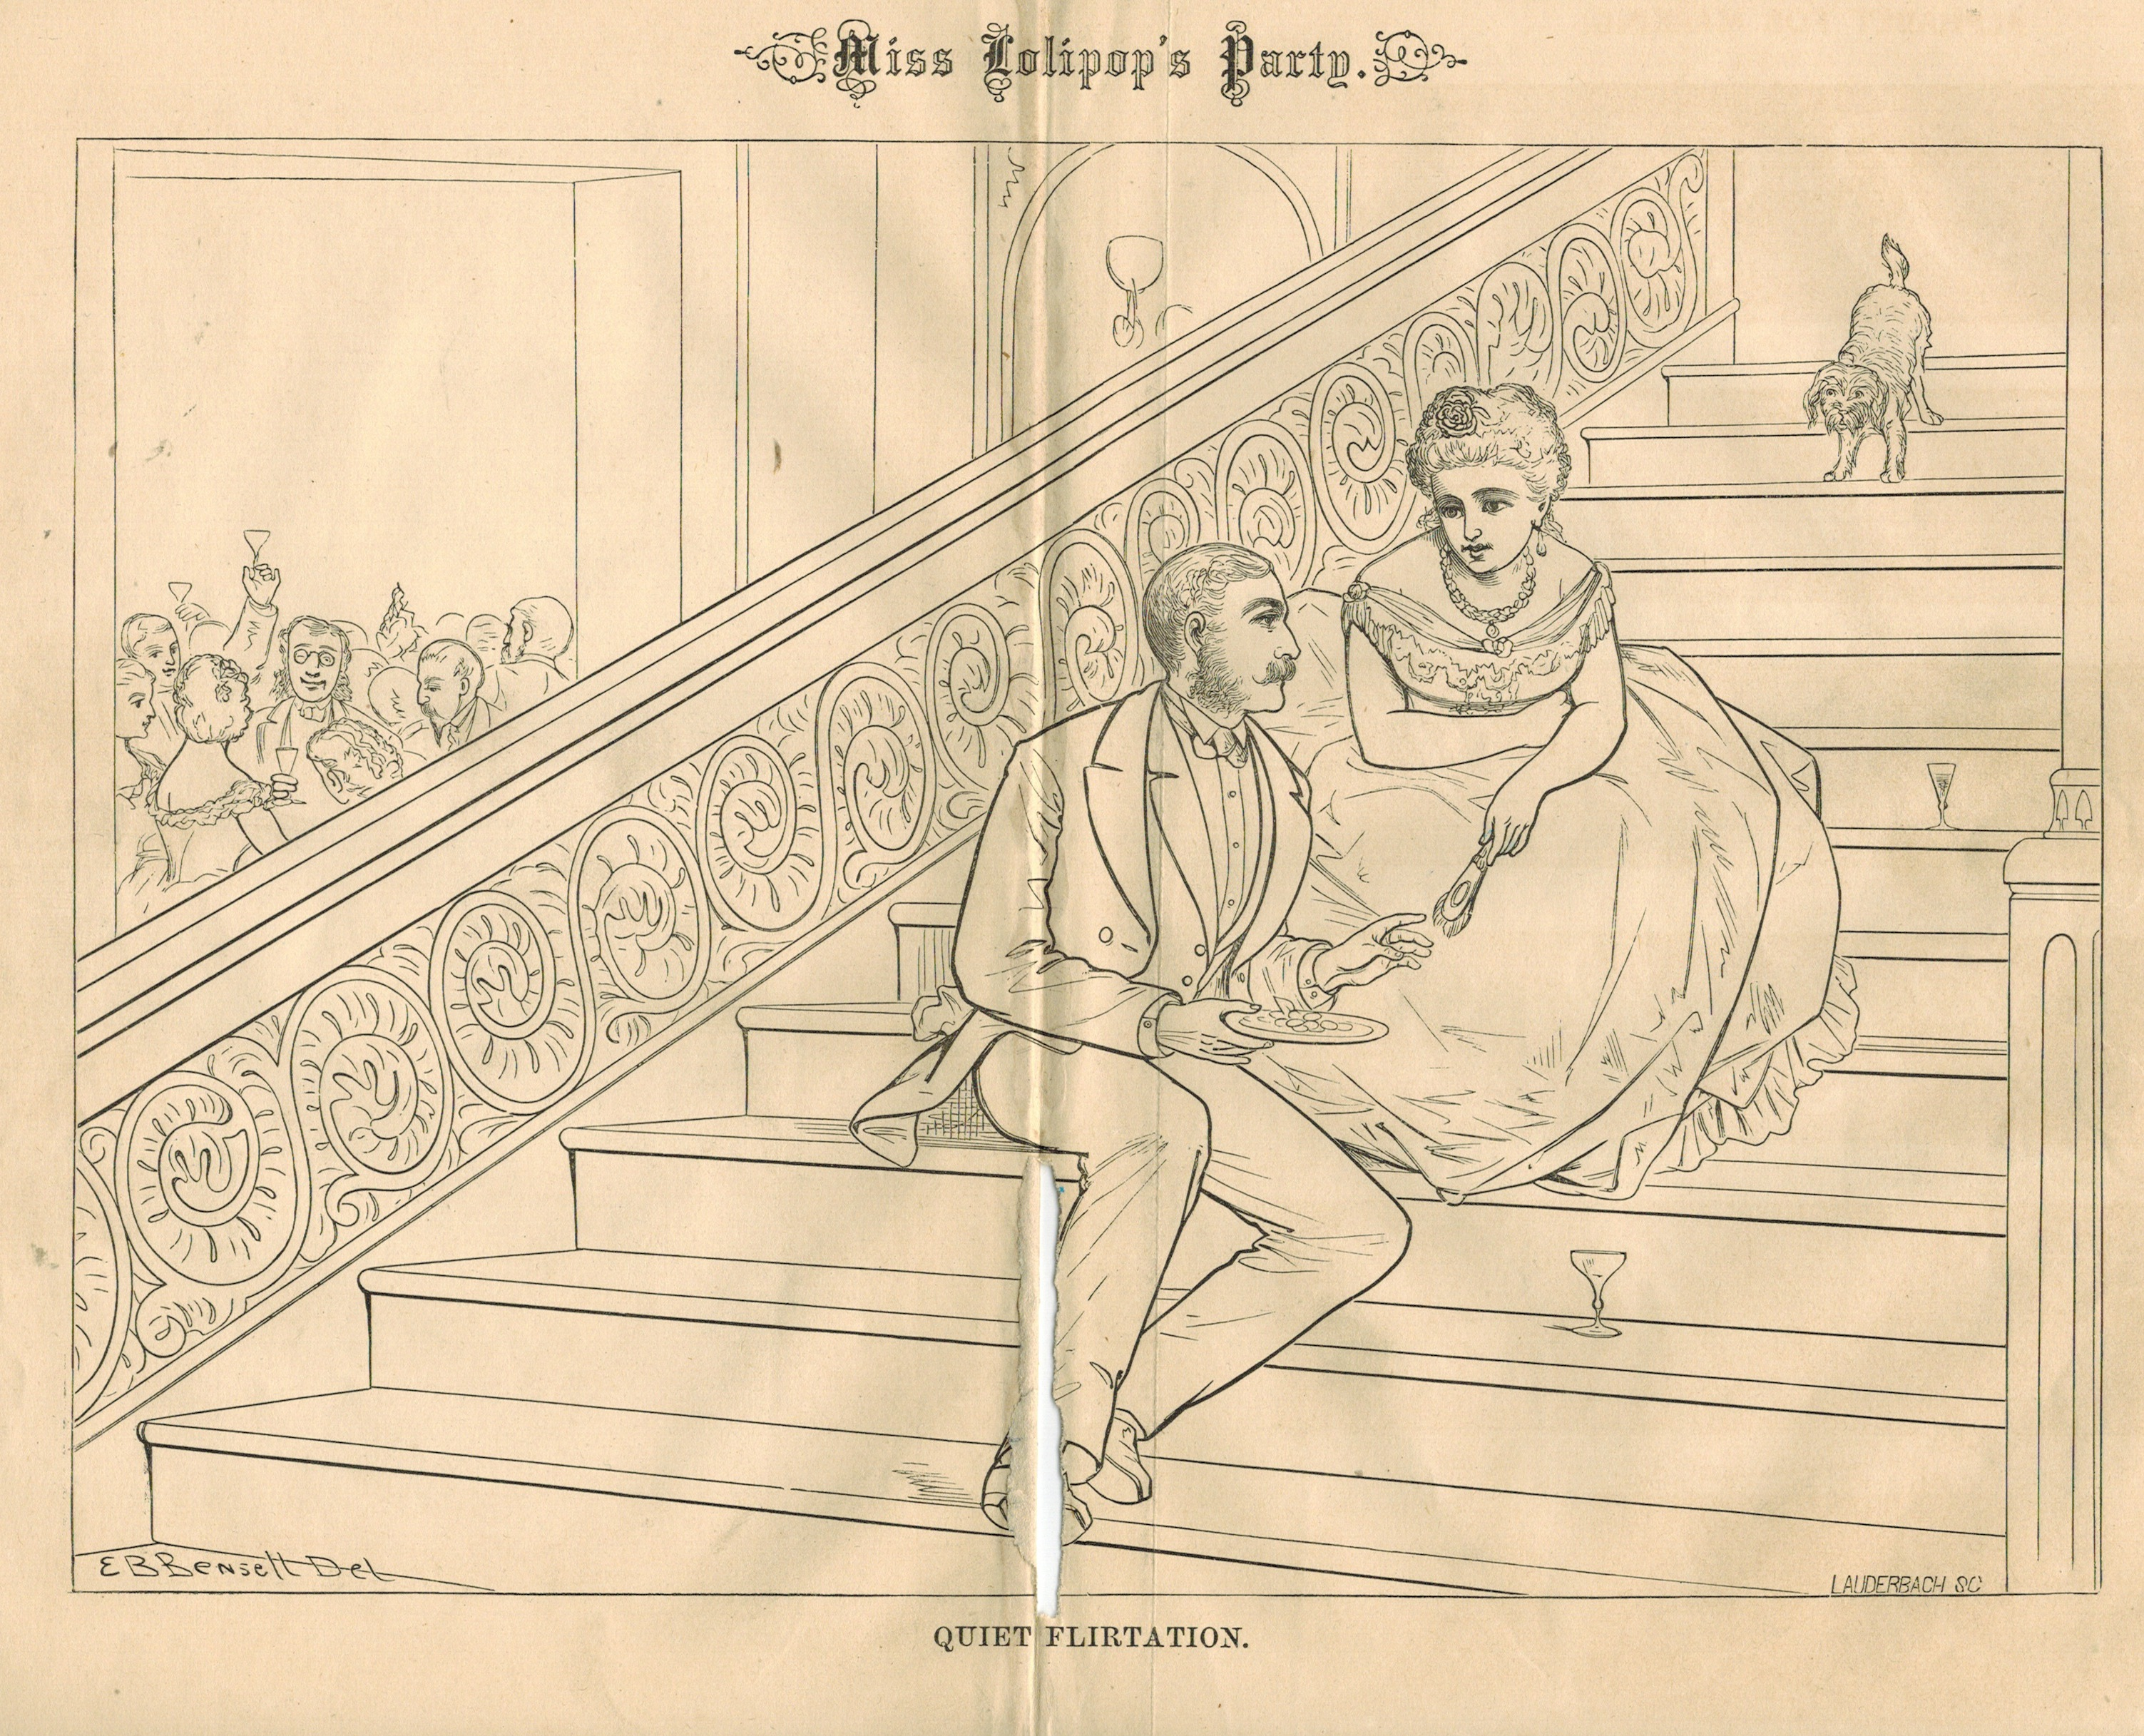 GodeysJuly1872Flirting copy